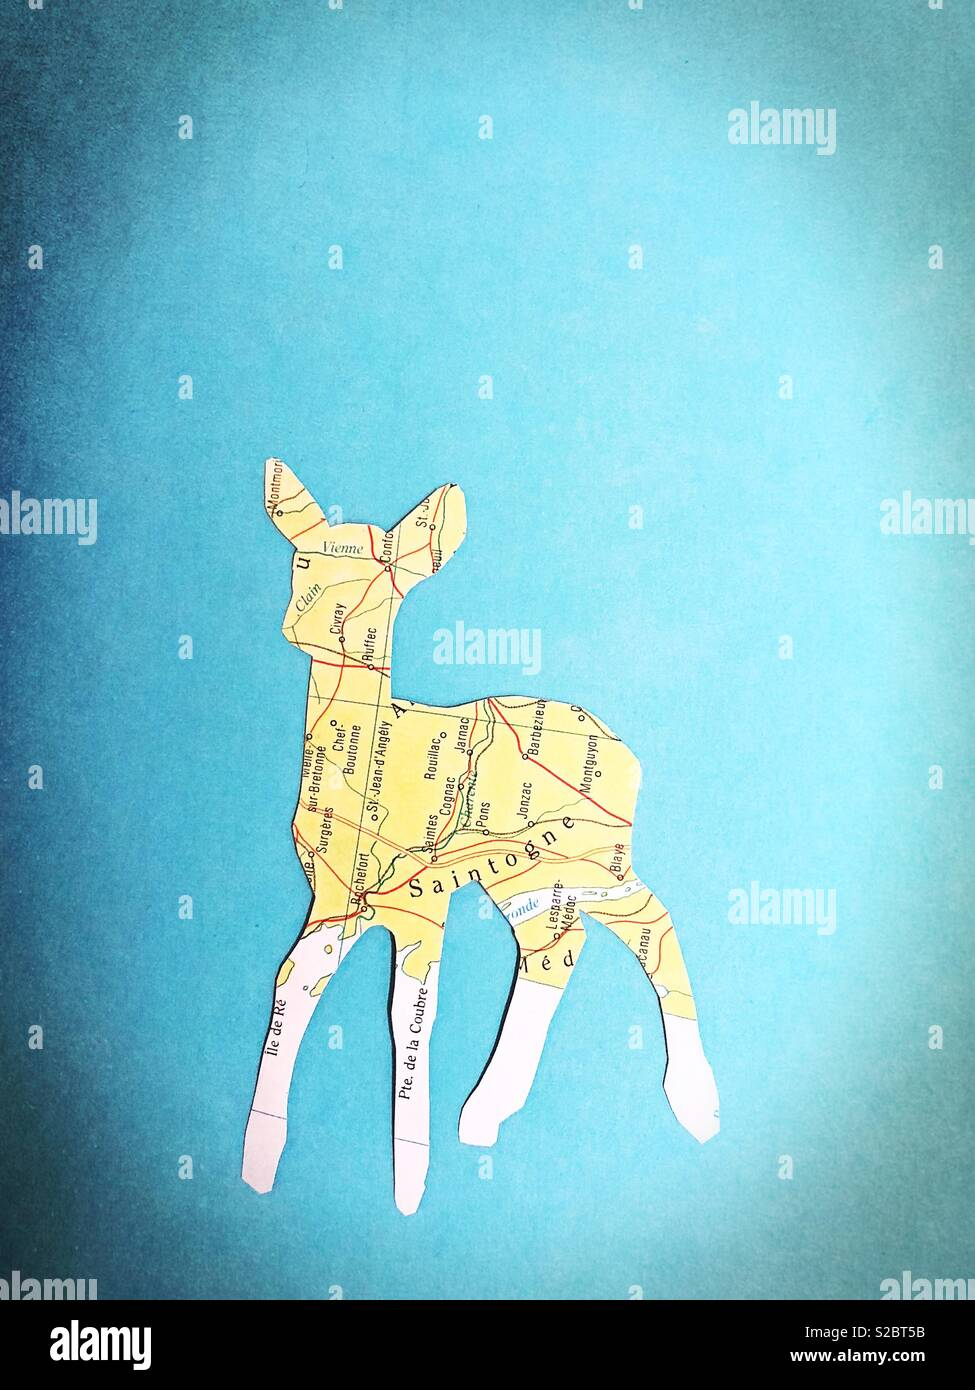 A fawn cutout made from a map. - Stock Image